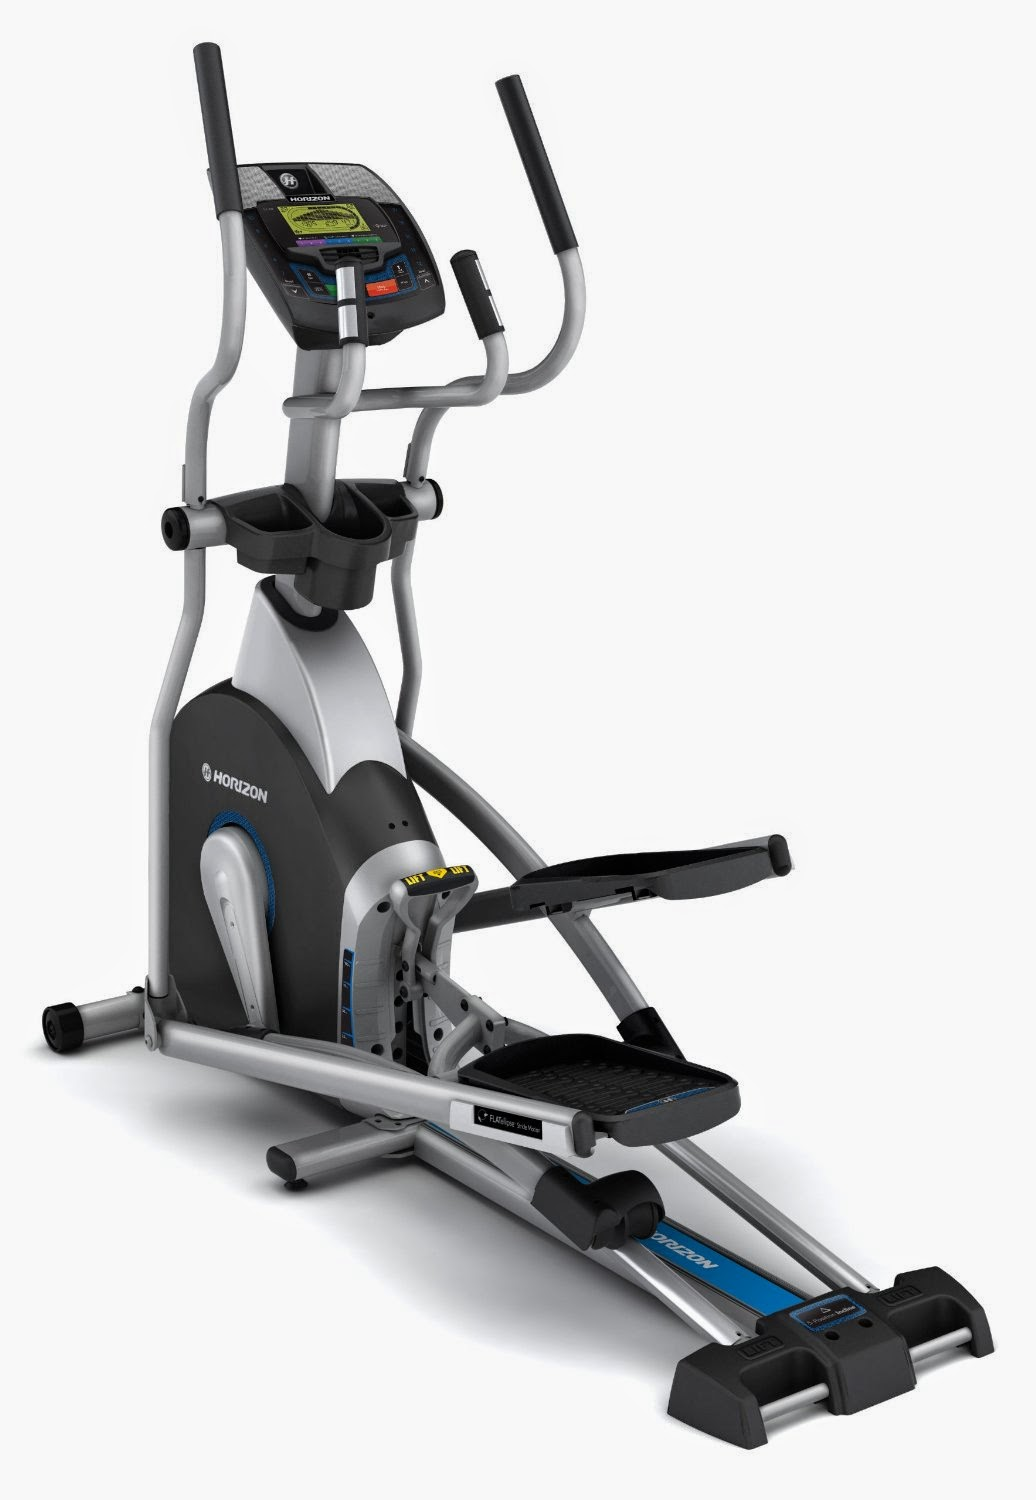 Horizon Fitness EX 69 2 Elliptical Trainer, review features & compare differences with EX 59 2